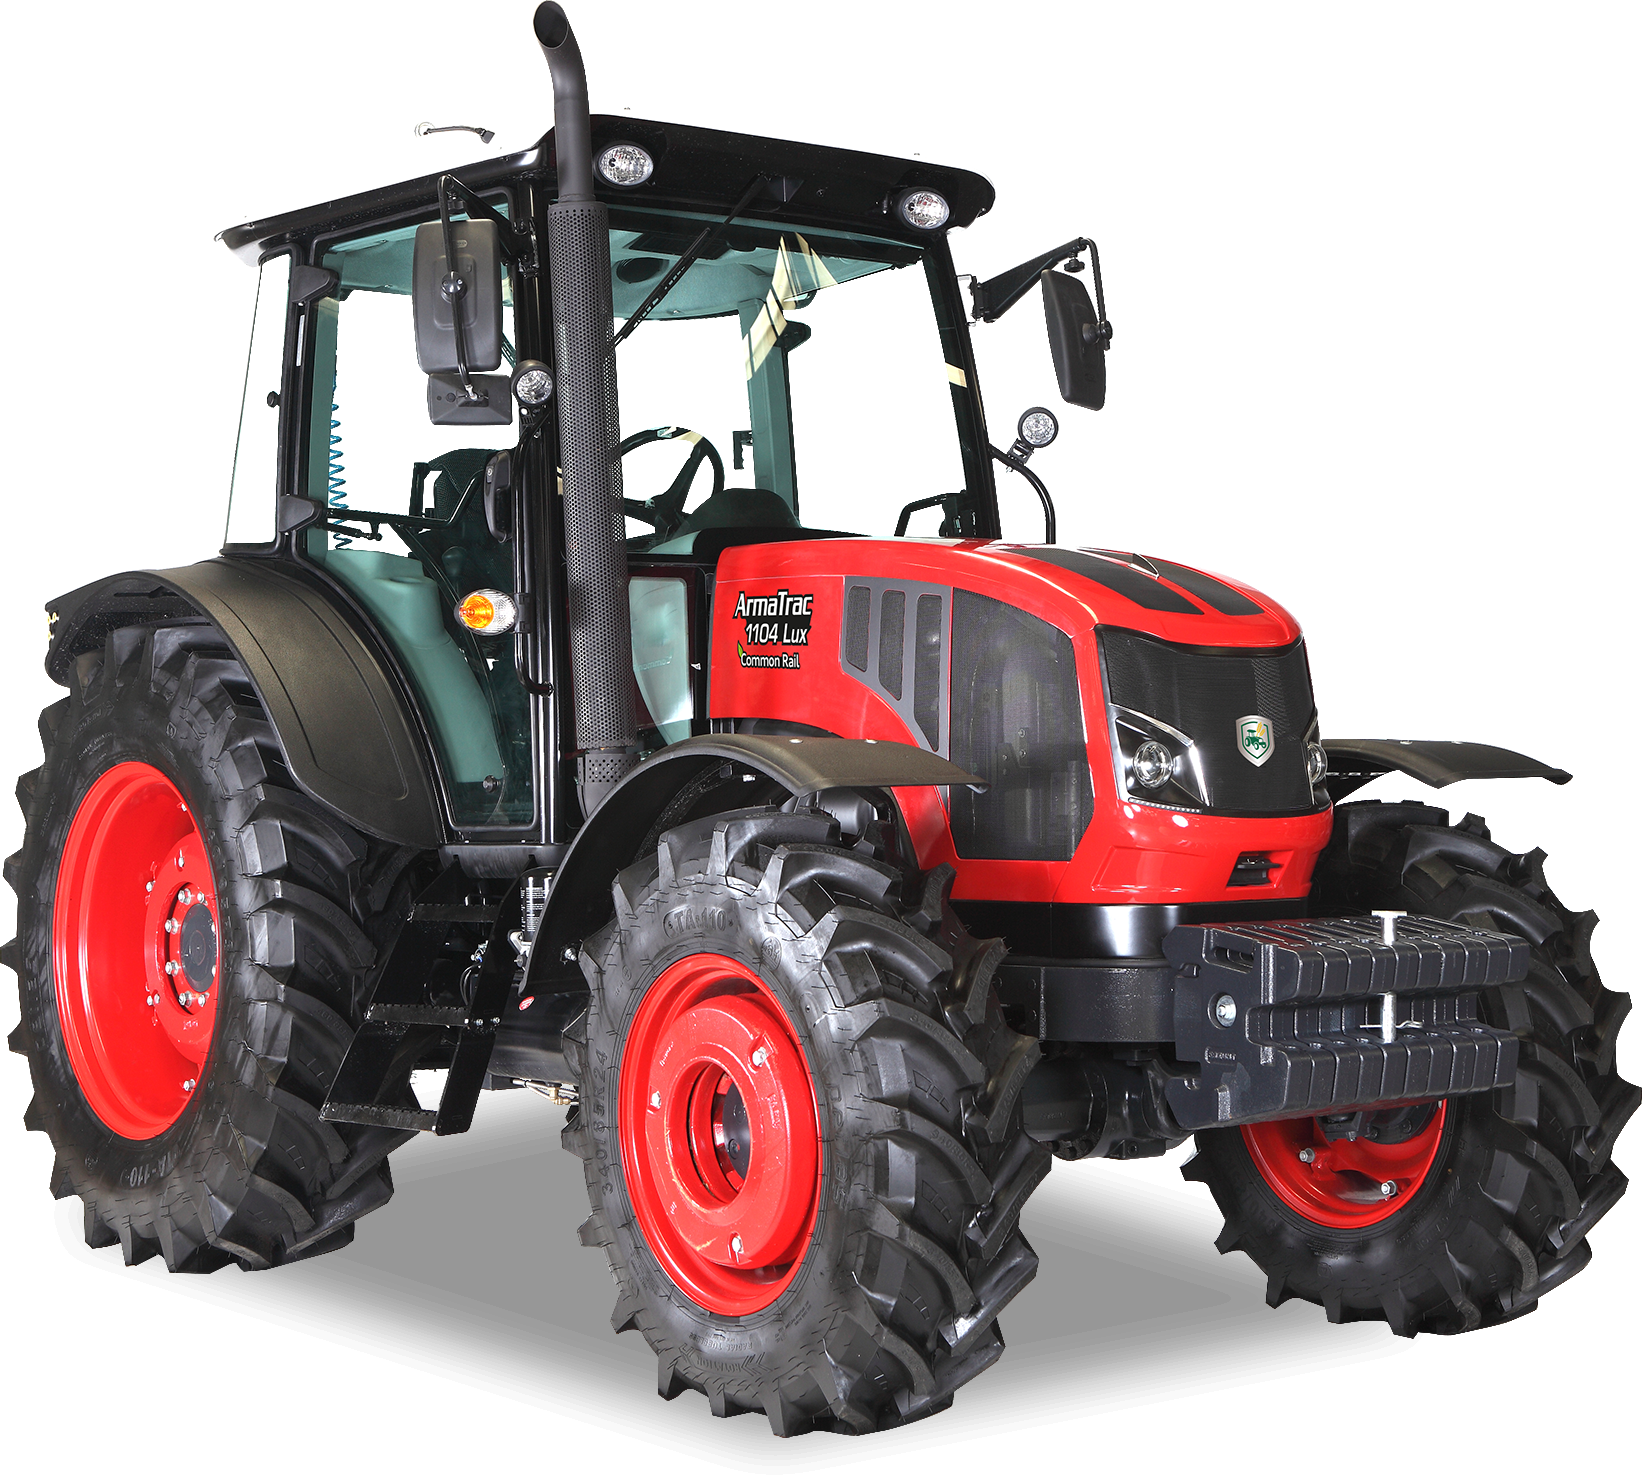 Drawing tractors tractor international. Armatrac our most stringent